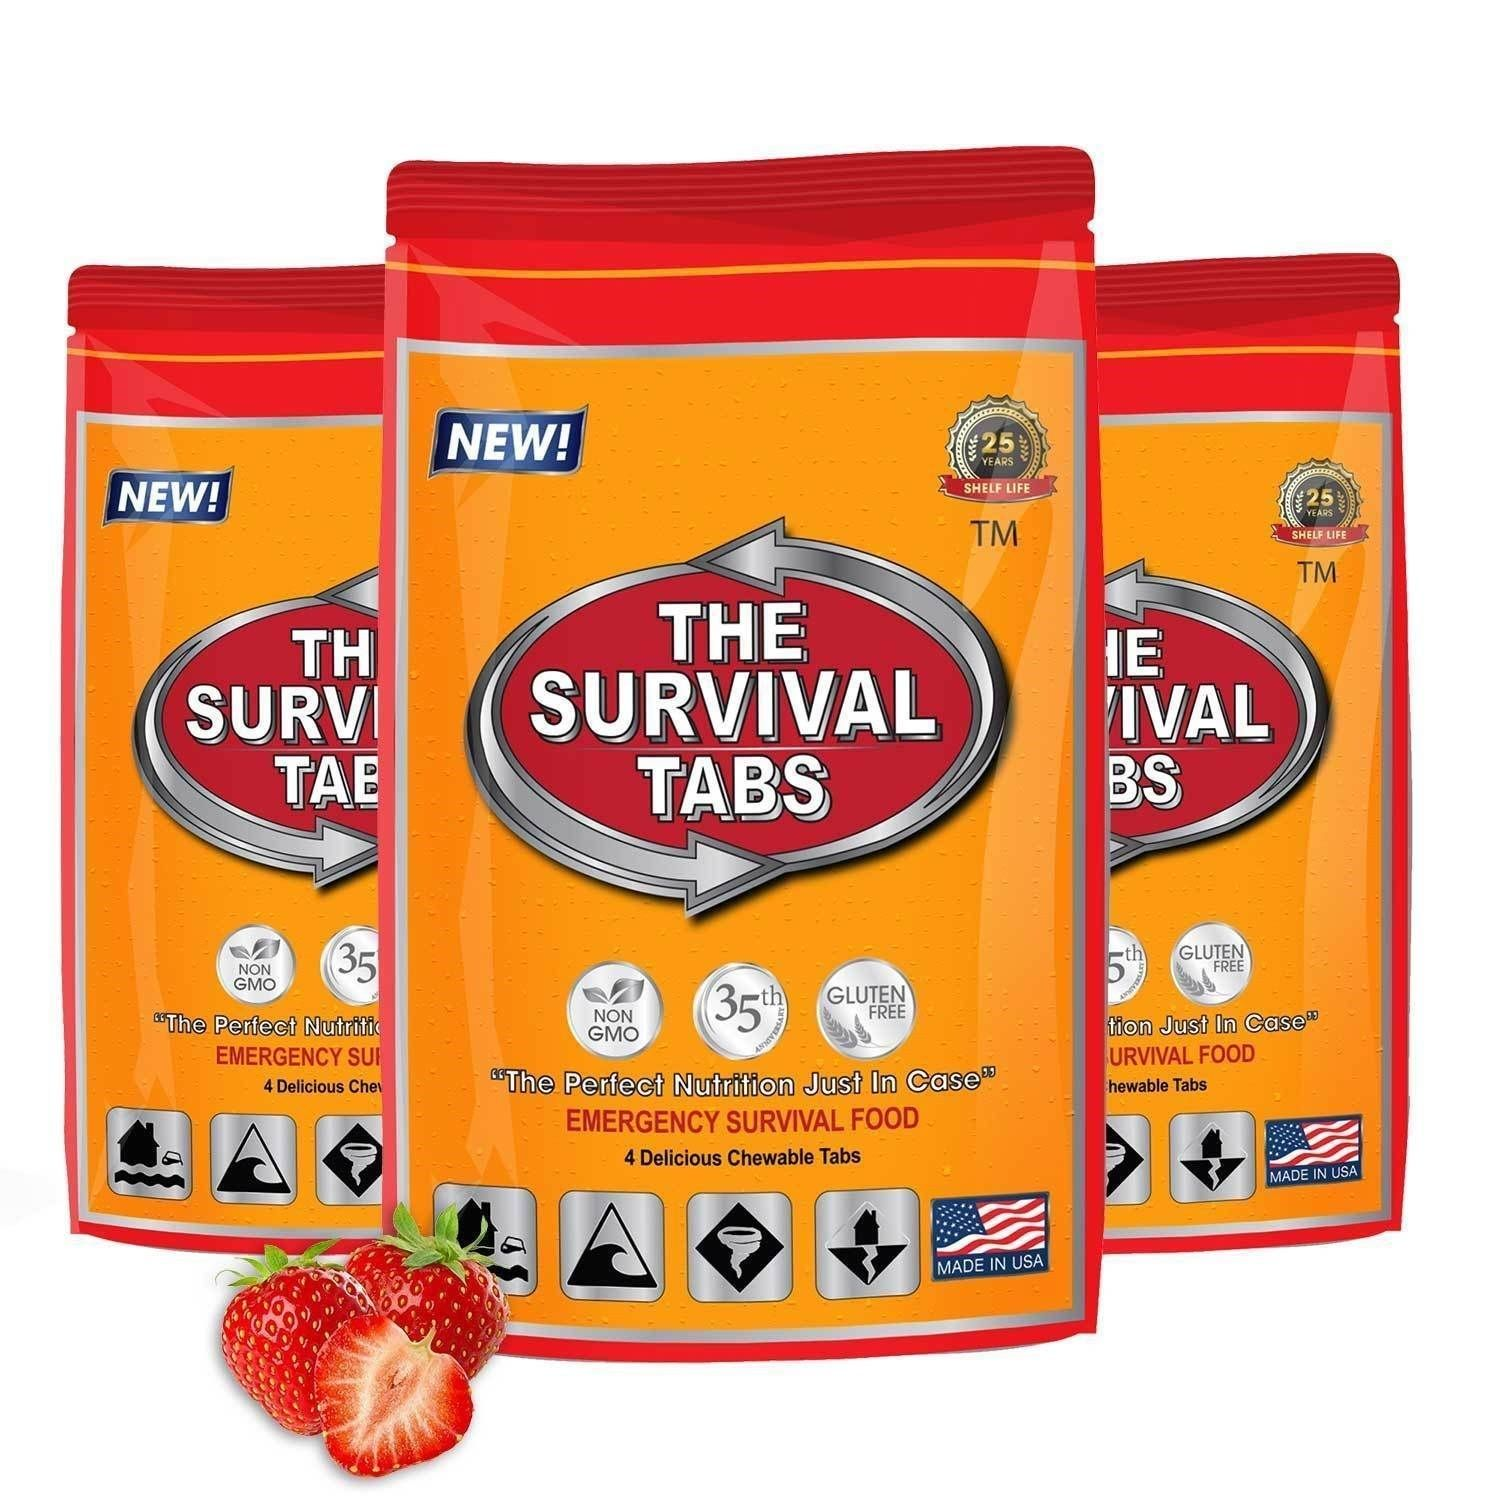 Survival Tabs 1 Day Food Storage Emergency Supply Survival Bag 1 Serving 1